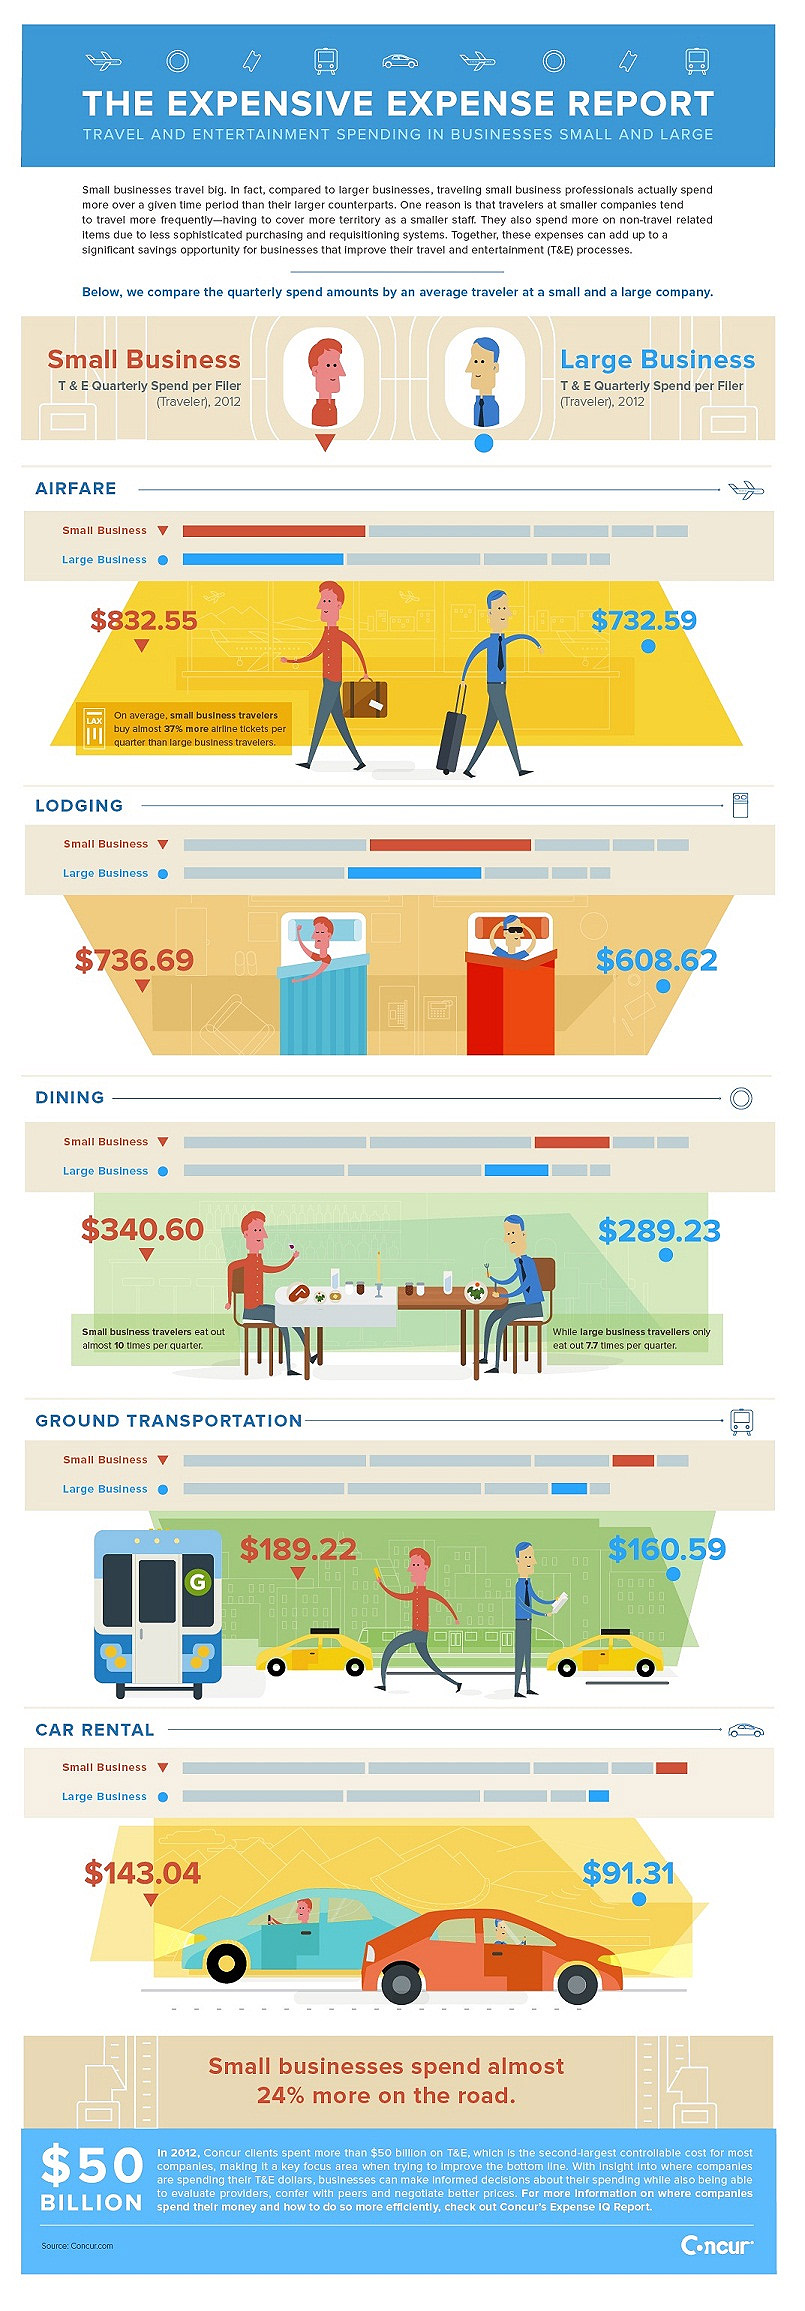 9 interesting small business travel expense statistics